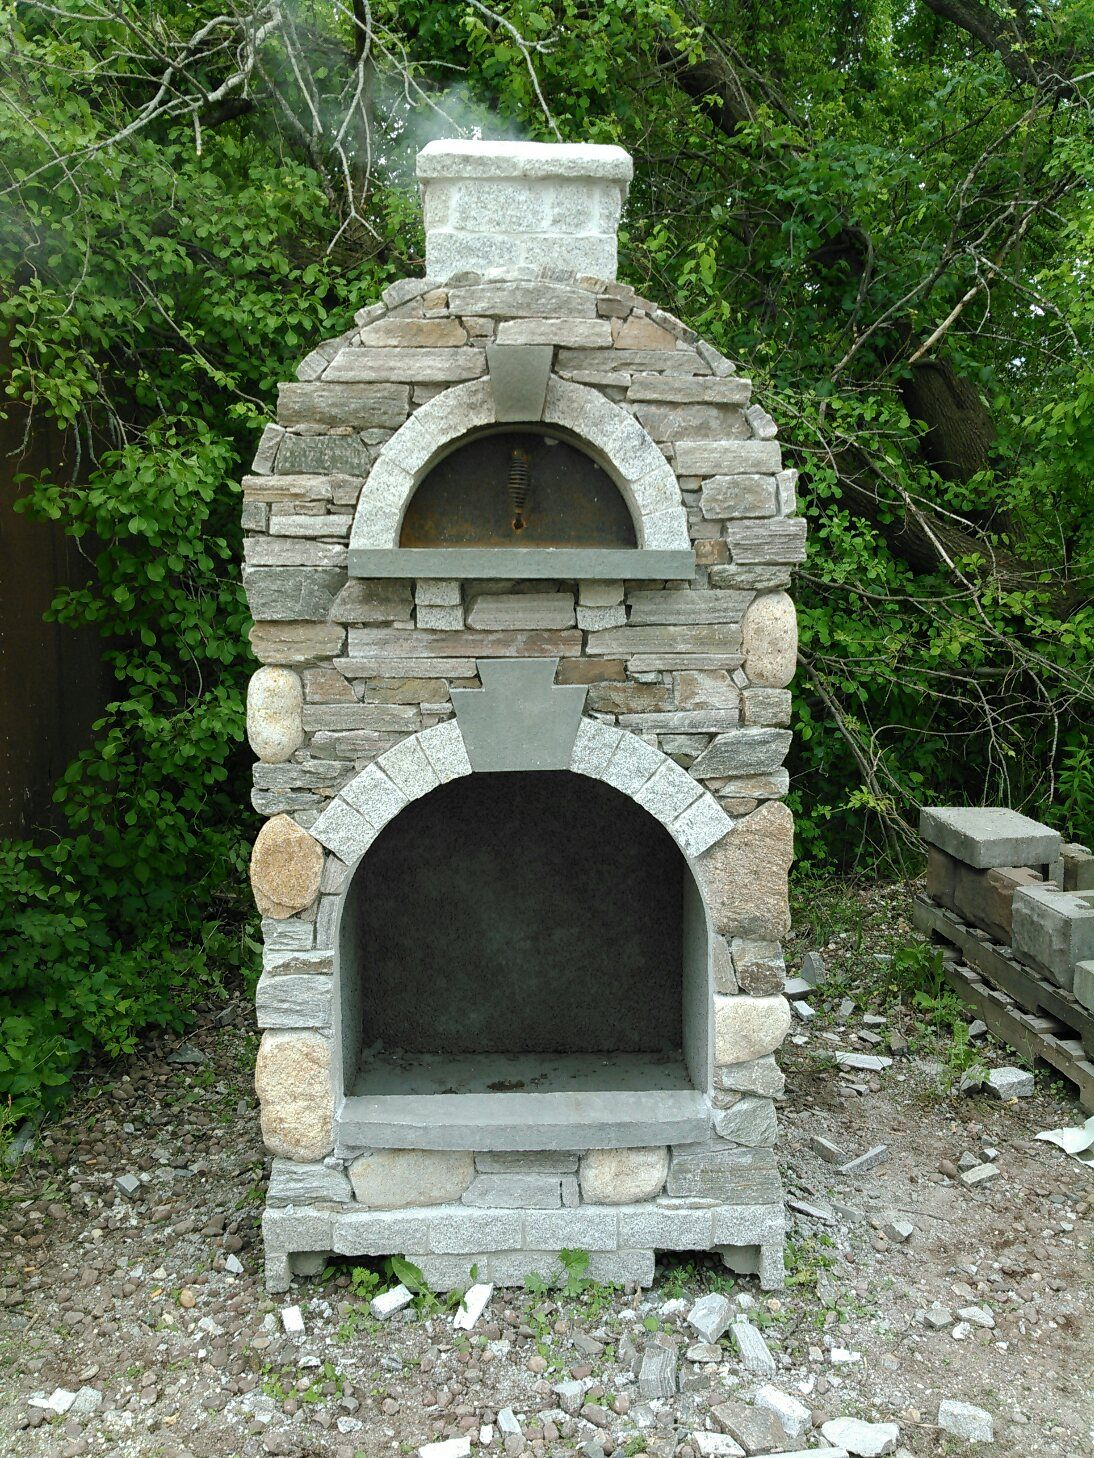 mezzo outdoor pizza oven with natural stone veneer outdoor pizza ovens pinterest fire. Black Bedroom Furniture Sets. Home Design Ideas